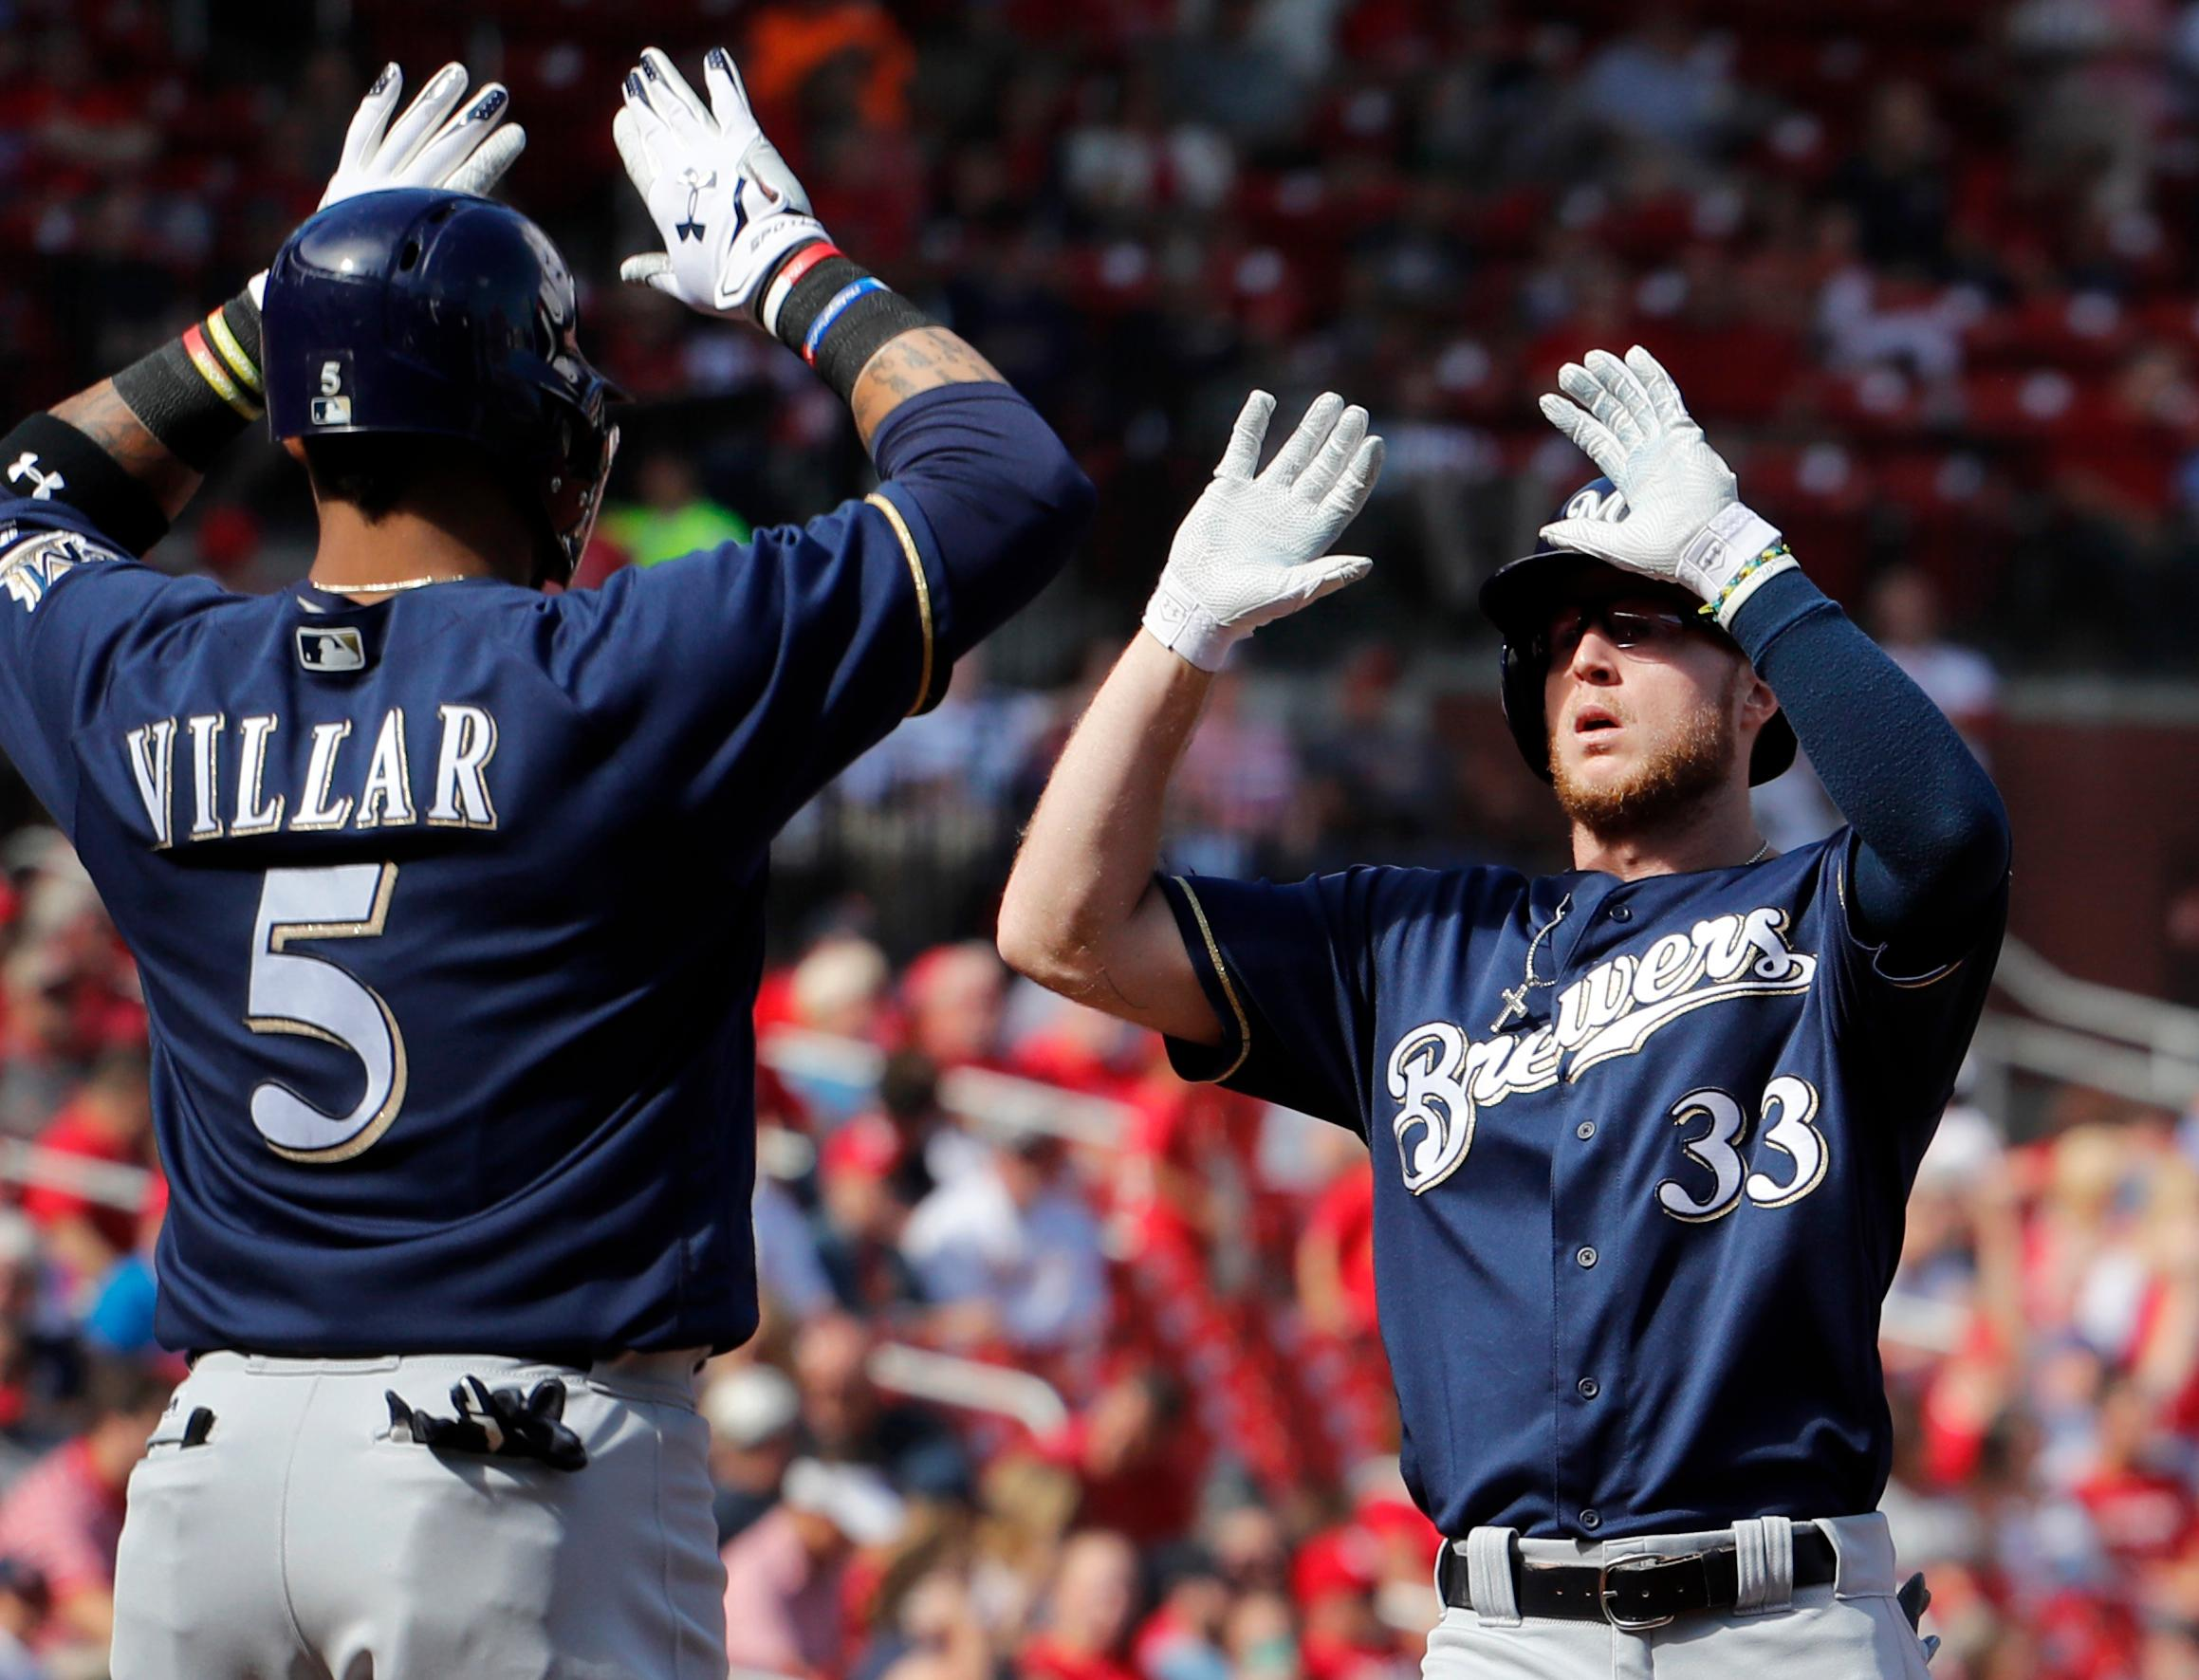 Milwaukee Brewers' Brett Phillips, right, is congratulated by teammate Jonathan Villar after hitting a three-run home run during the first inning against the St. Louis Cardinals, Sunday, Oct. 1, 2017, in St. Louis. (AP Photo/Jeff Roberson)